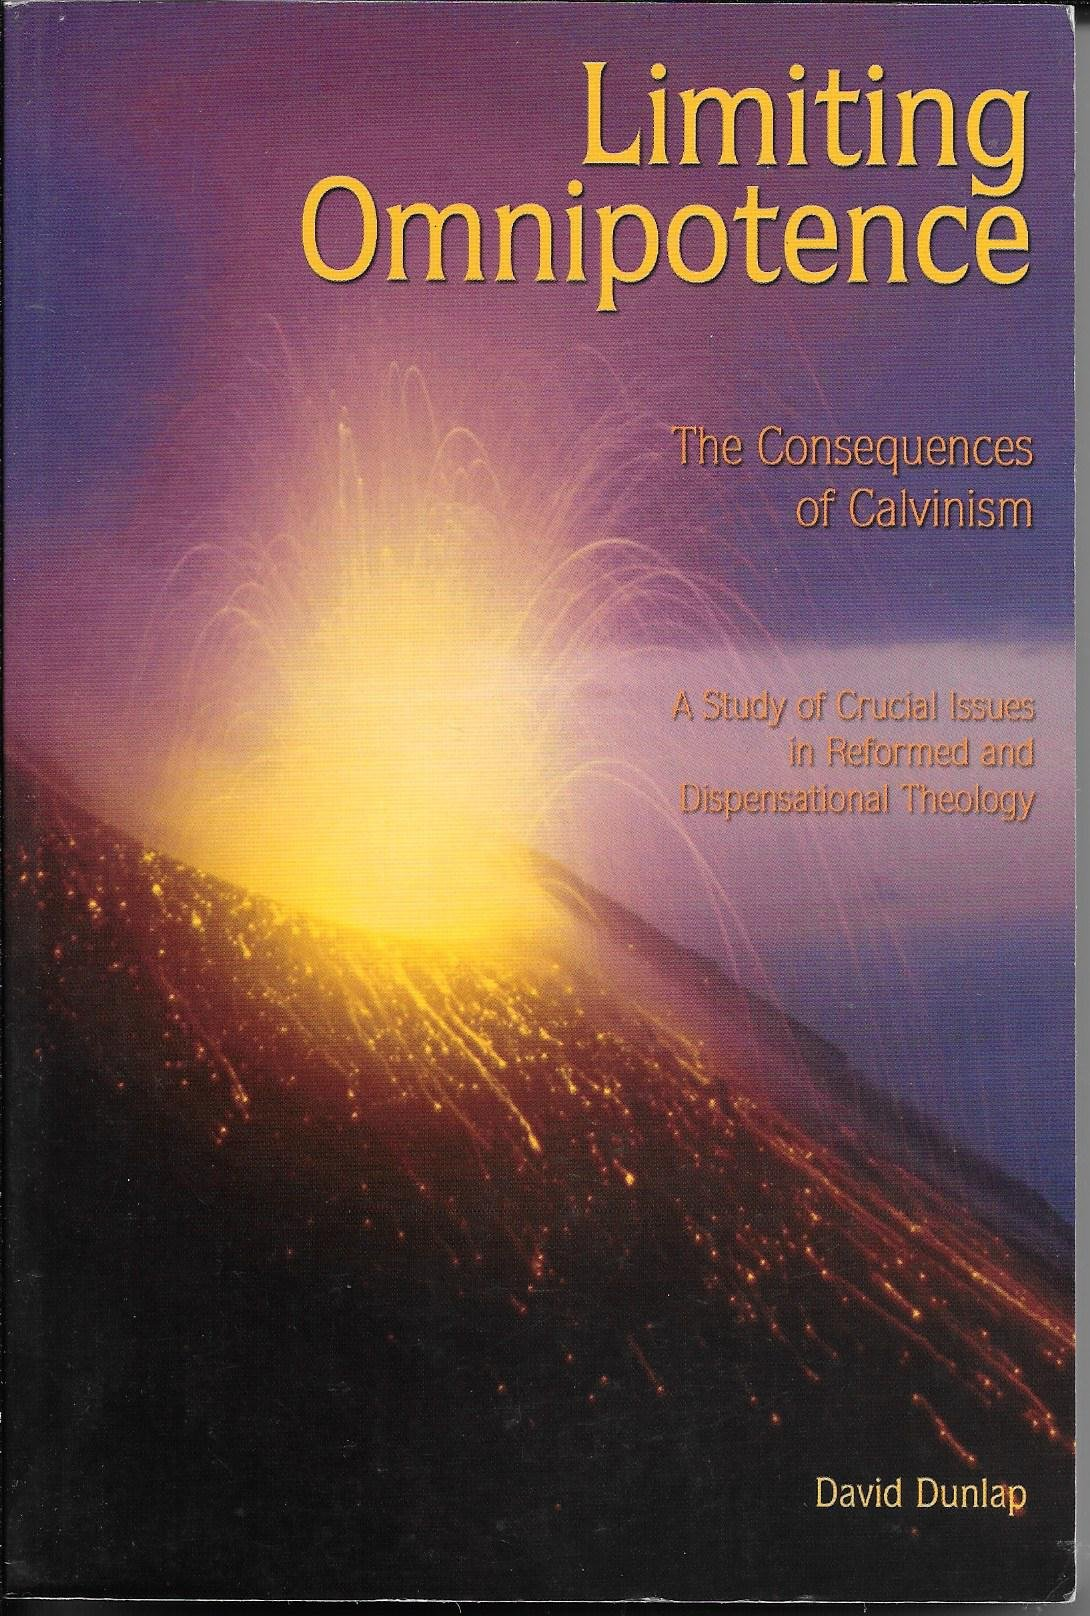 Limiting Omnipotence: The Consequences of Calvinism- A Study of Critical Issues in Reformed and Dispensational Theology